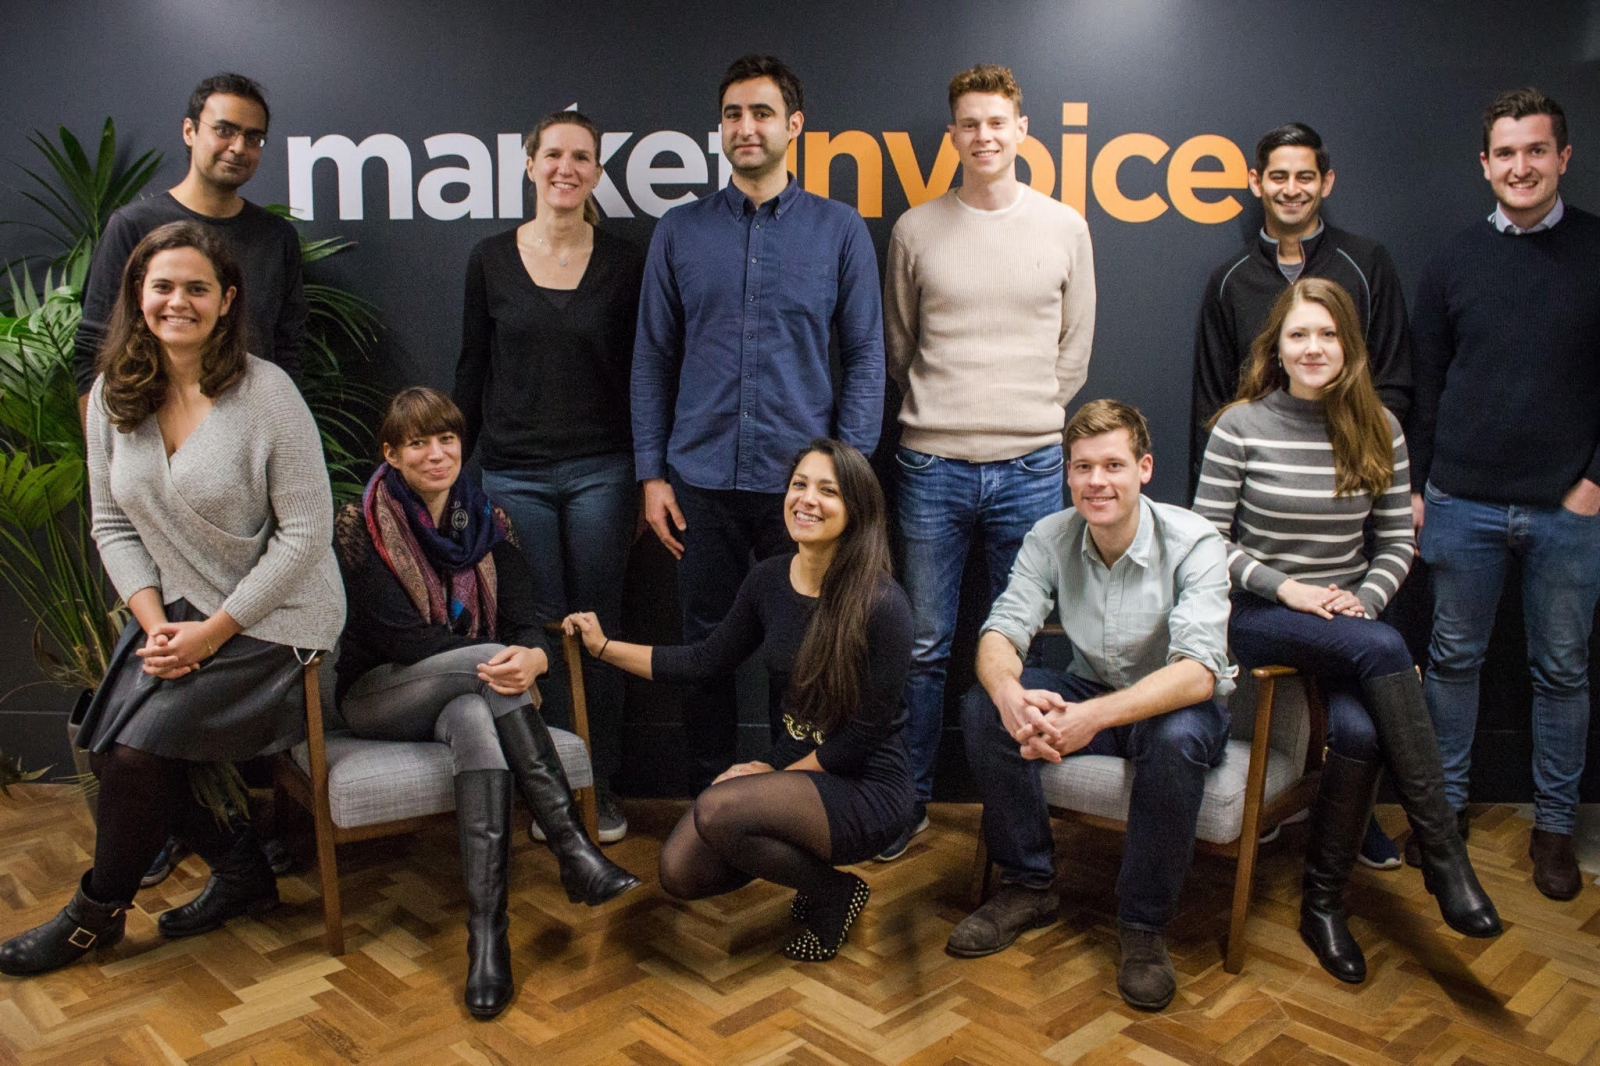 MarketInvoice secures €63 million in equity and debt funding for its invoice financing and business loan solutions